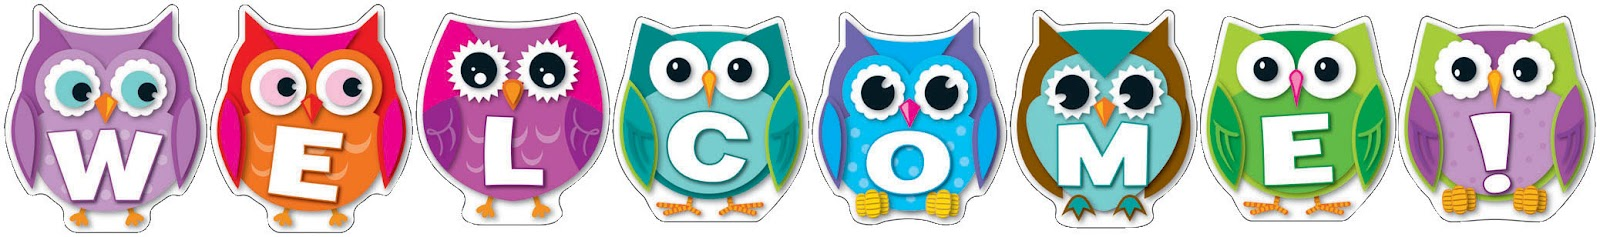 Owl welcome back clipart